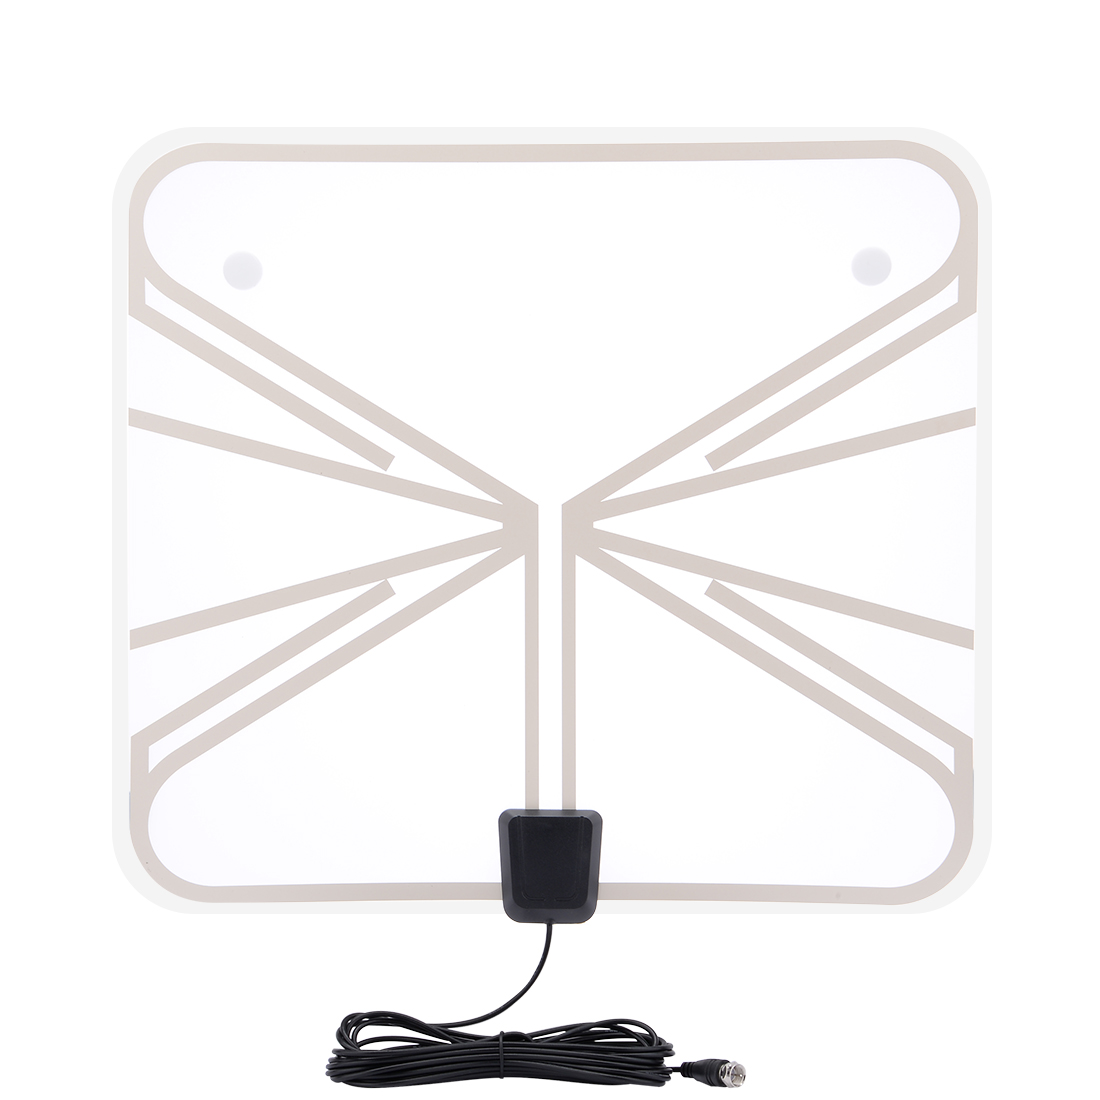 HDTV Antenna 50 Miles Range Digital Amplified TV Antenna with Detachable Amplifier